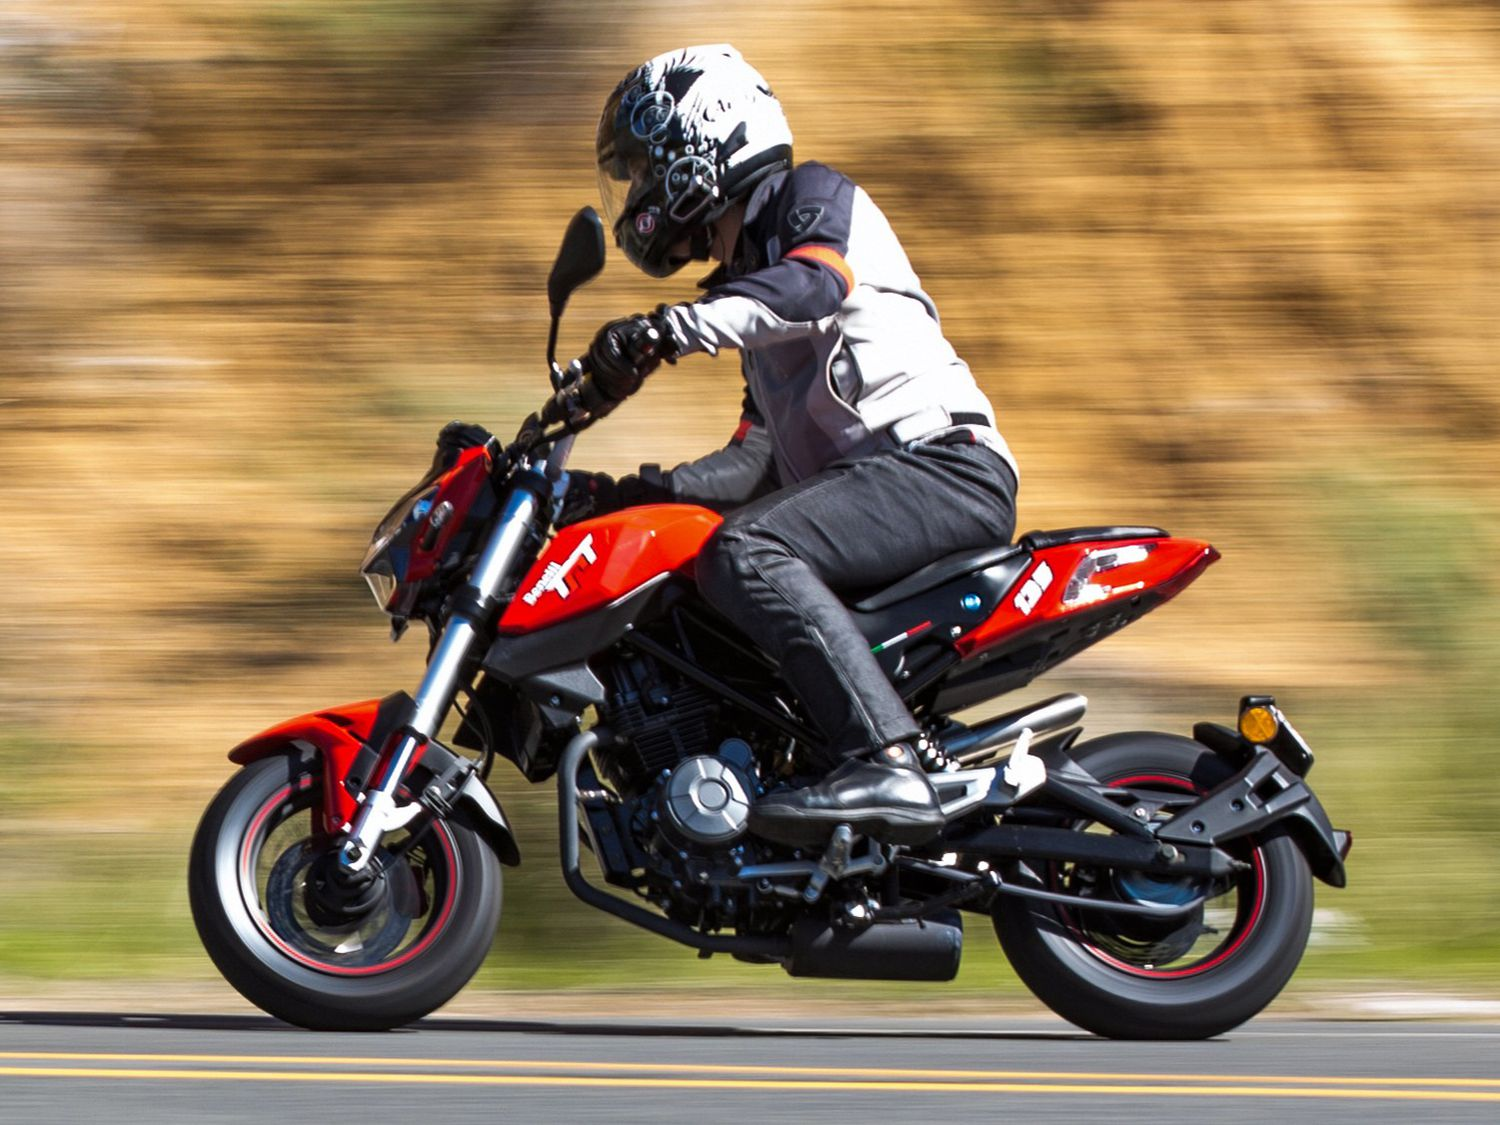 Low seat height, 12 inch wheels, and fuel injection along with a nice price put this Benelli squarely in funbike territory.